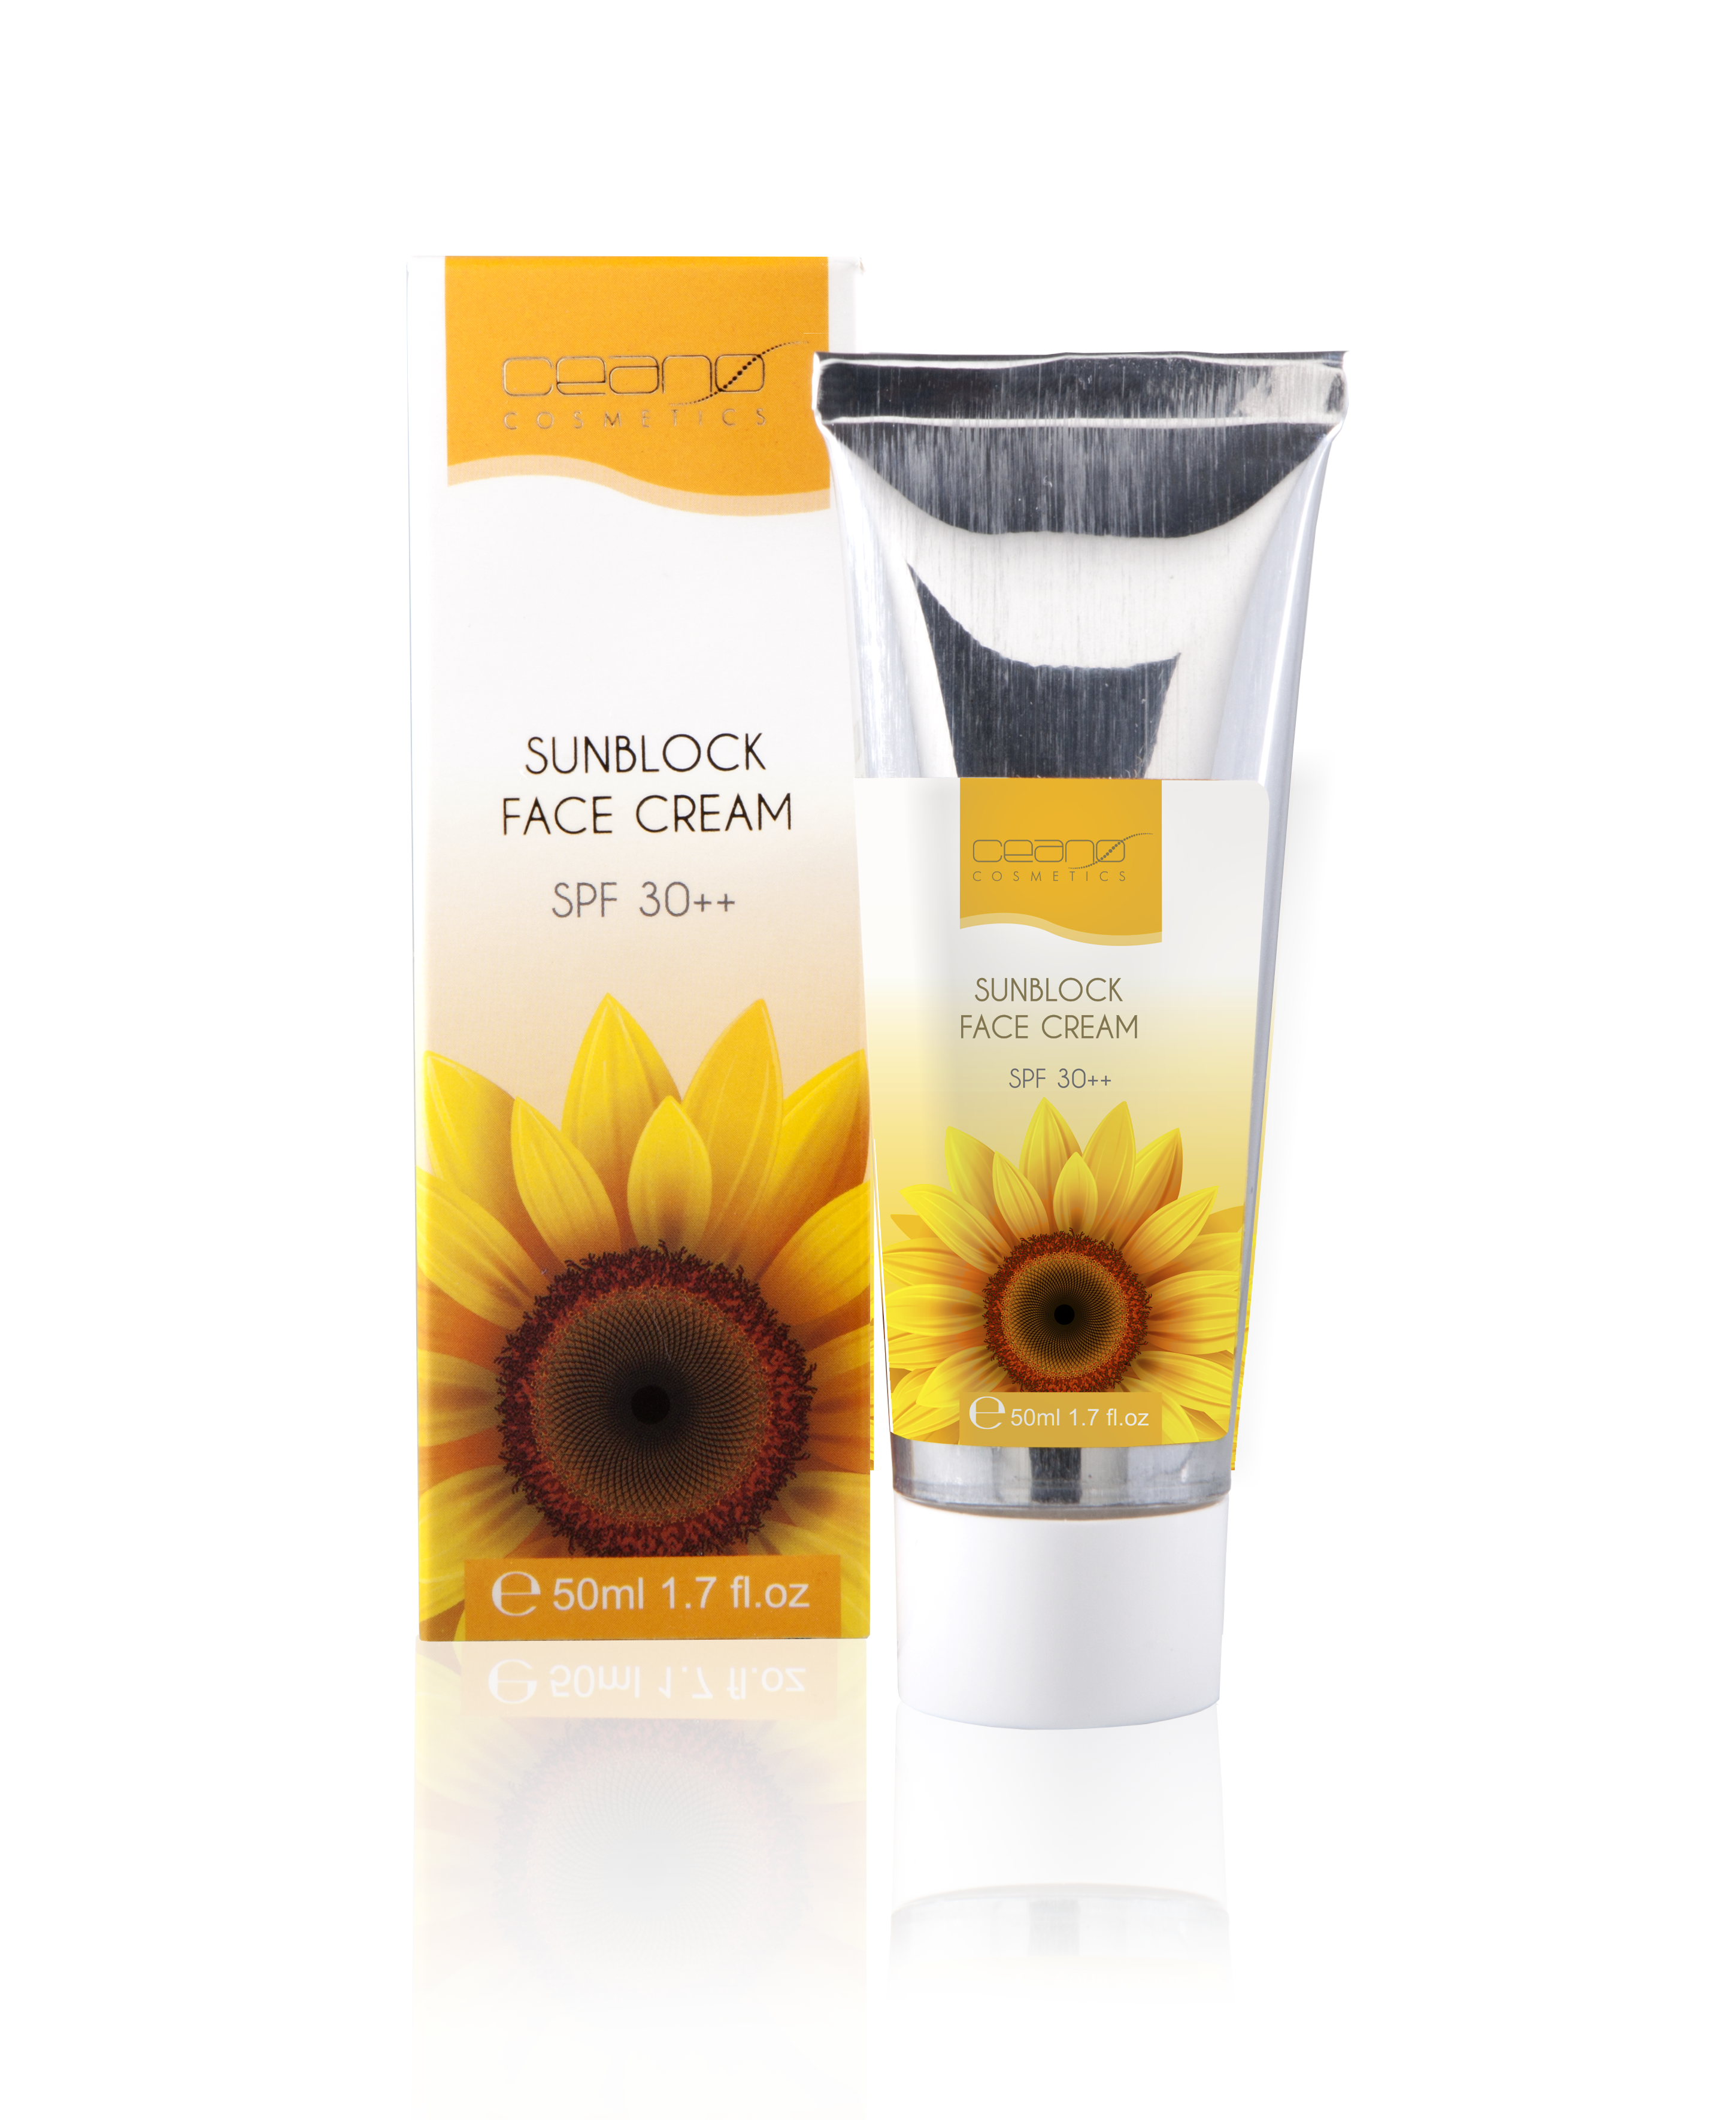 Sunblock Face Cream